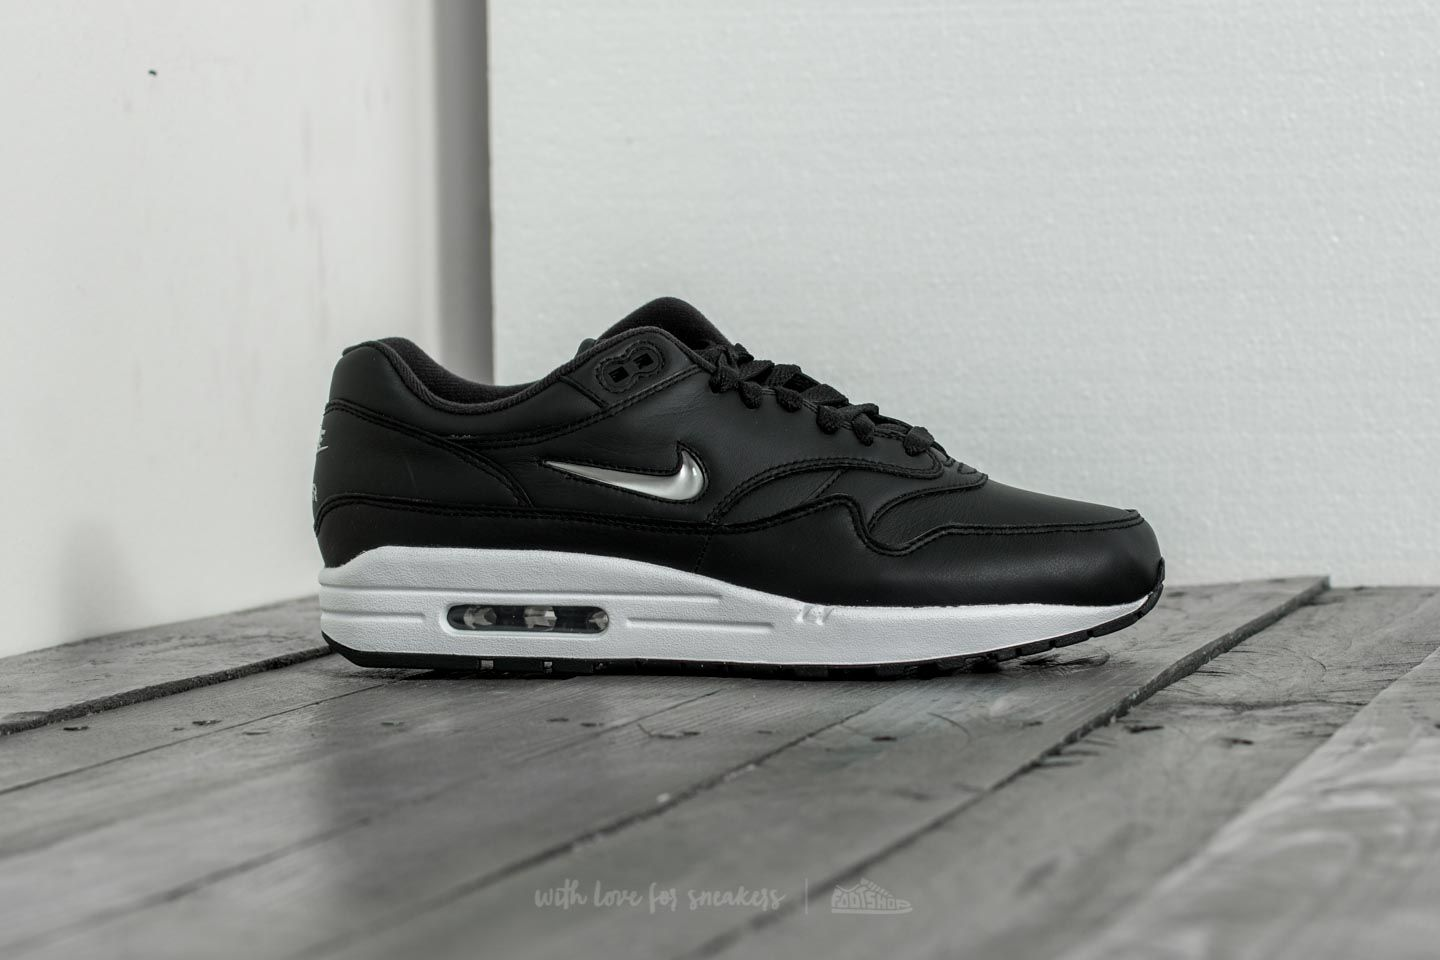 Nike Air Max 1 Premium SC Black Metallic Silver White | Footshop